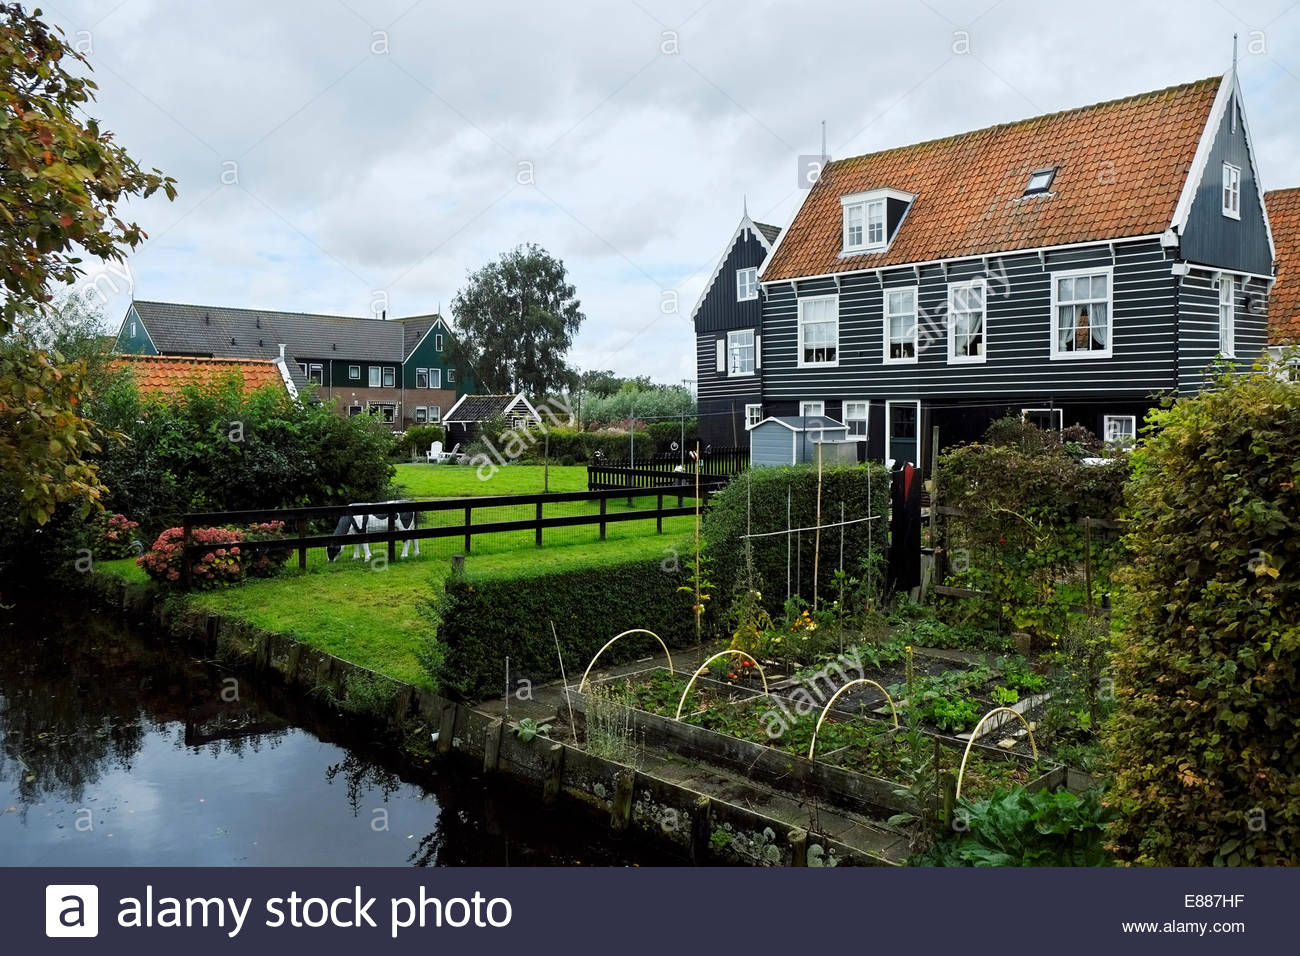 Traditional houses and gardens with added animal figures on the island/peninsula of Marken, The Netherlands. - Stock Image